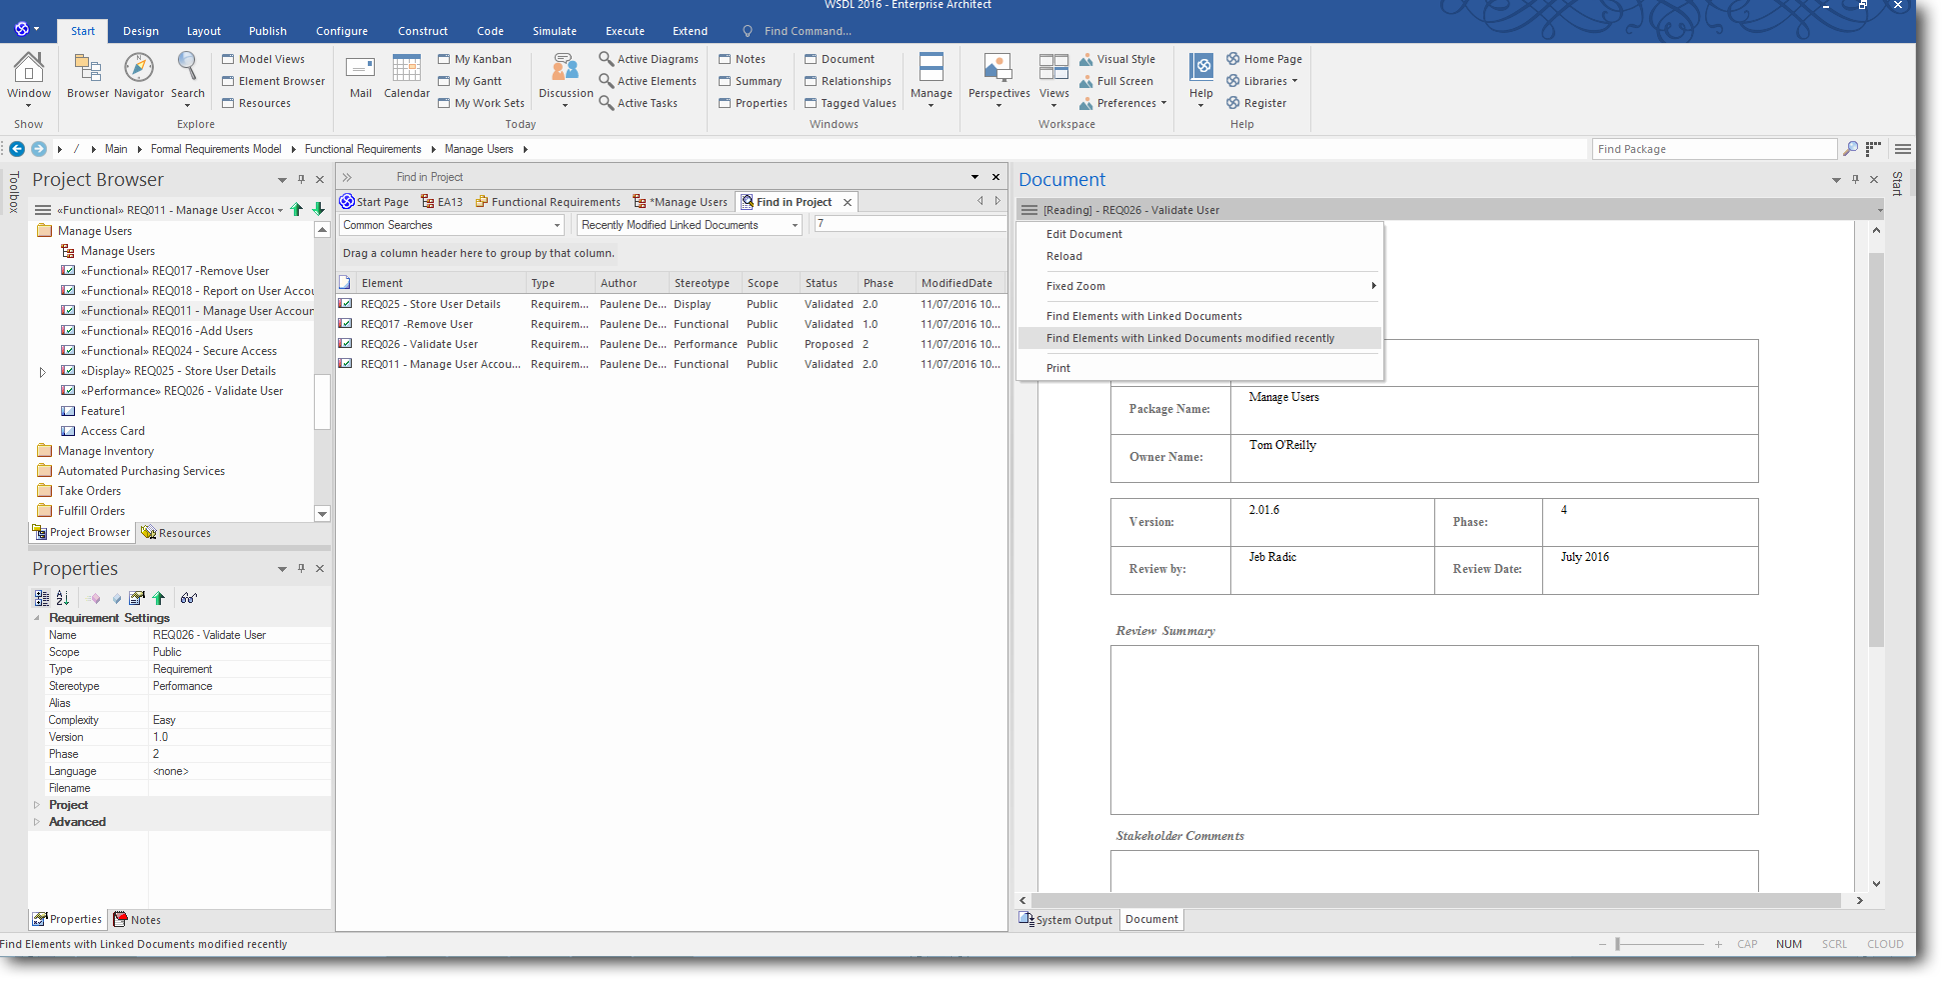 Enterprise Architect 13 Beta: Searches and Charts - Document View